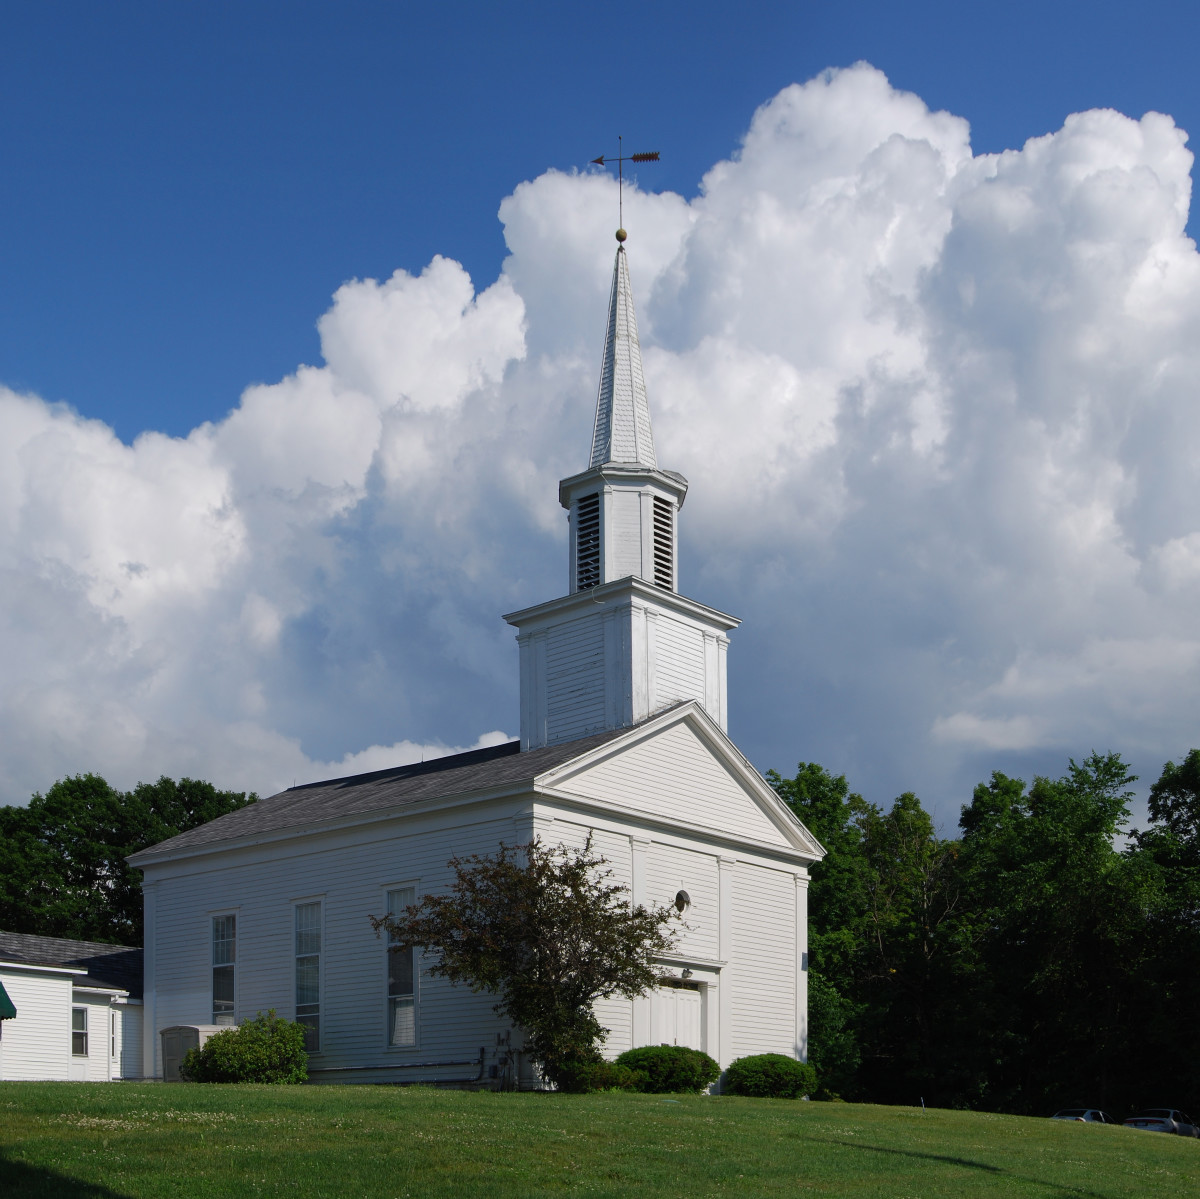 ONE OF 350,000 CHURCHES IN AMERICA